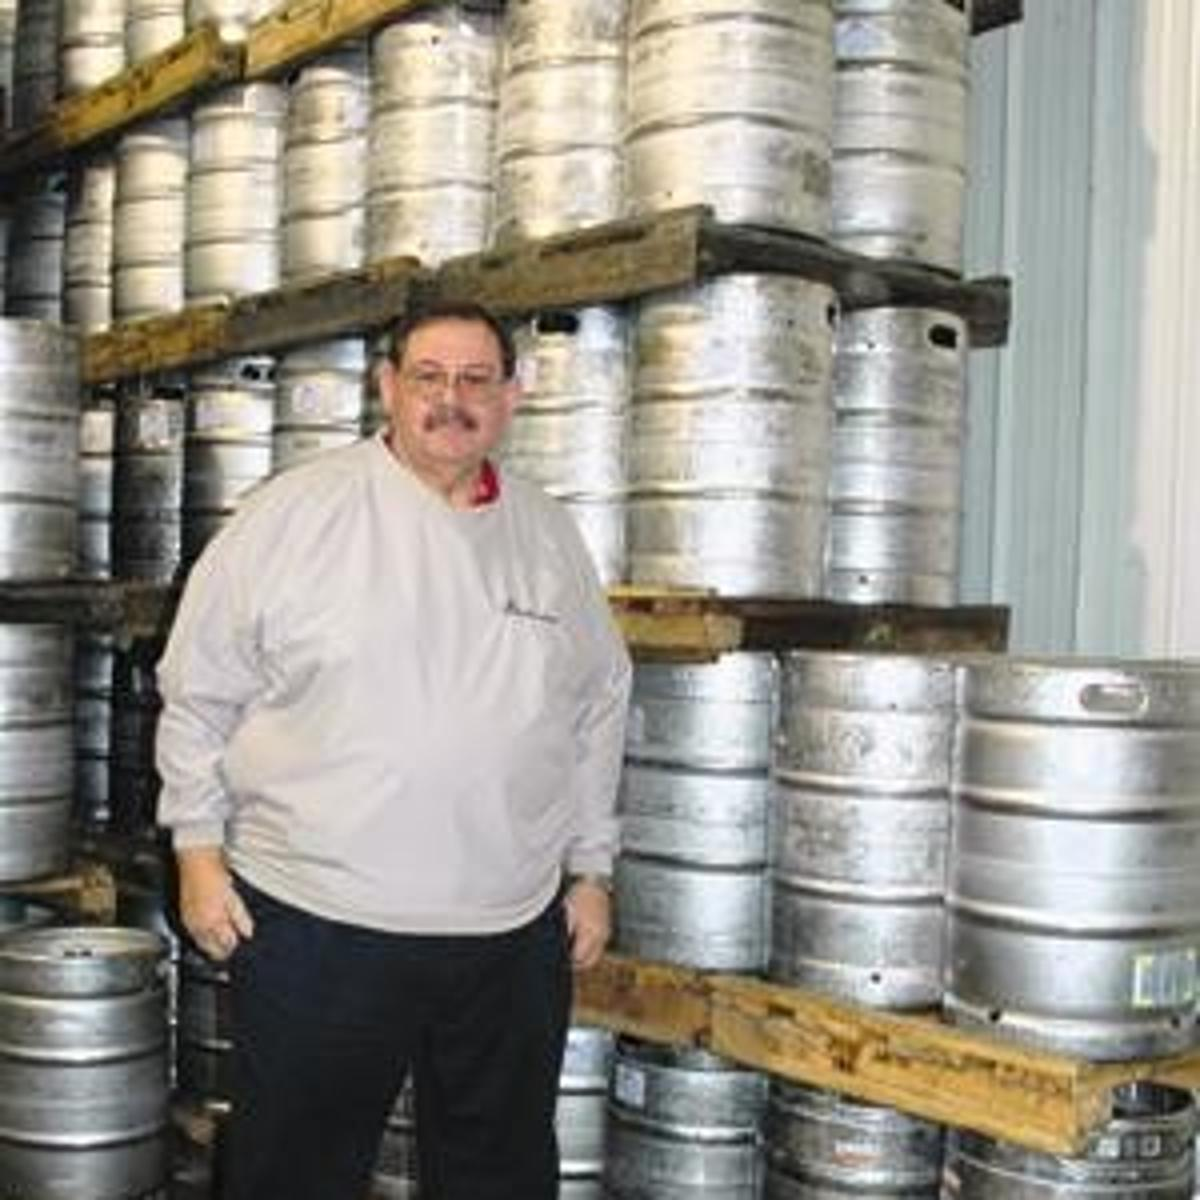 Jeff Six-Pack: Budweiser distributor Scheinost has a passion